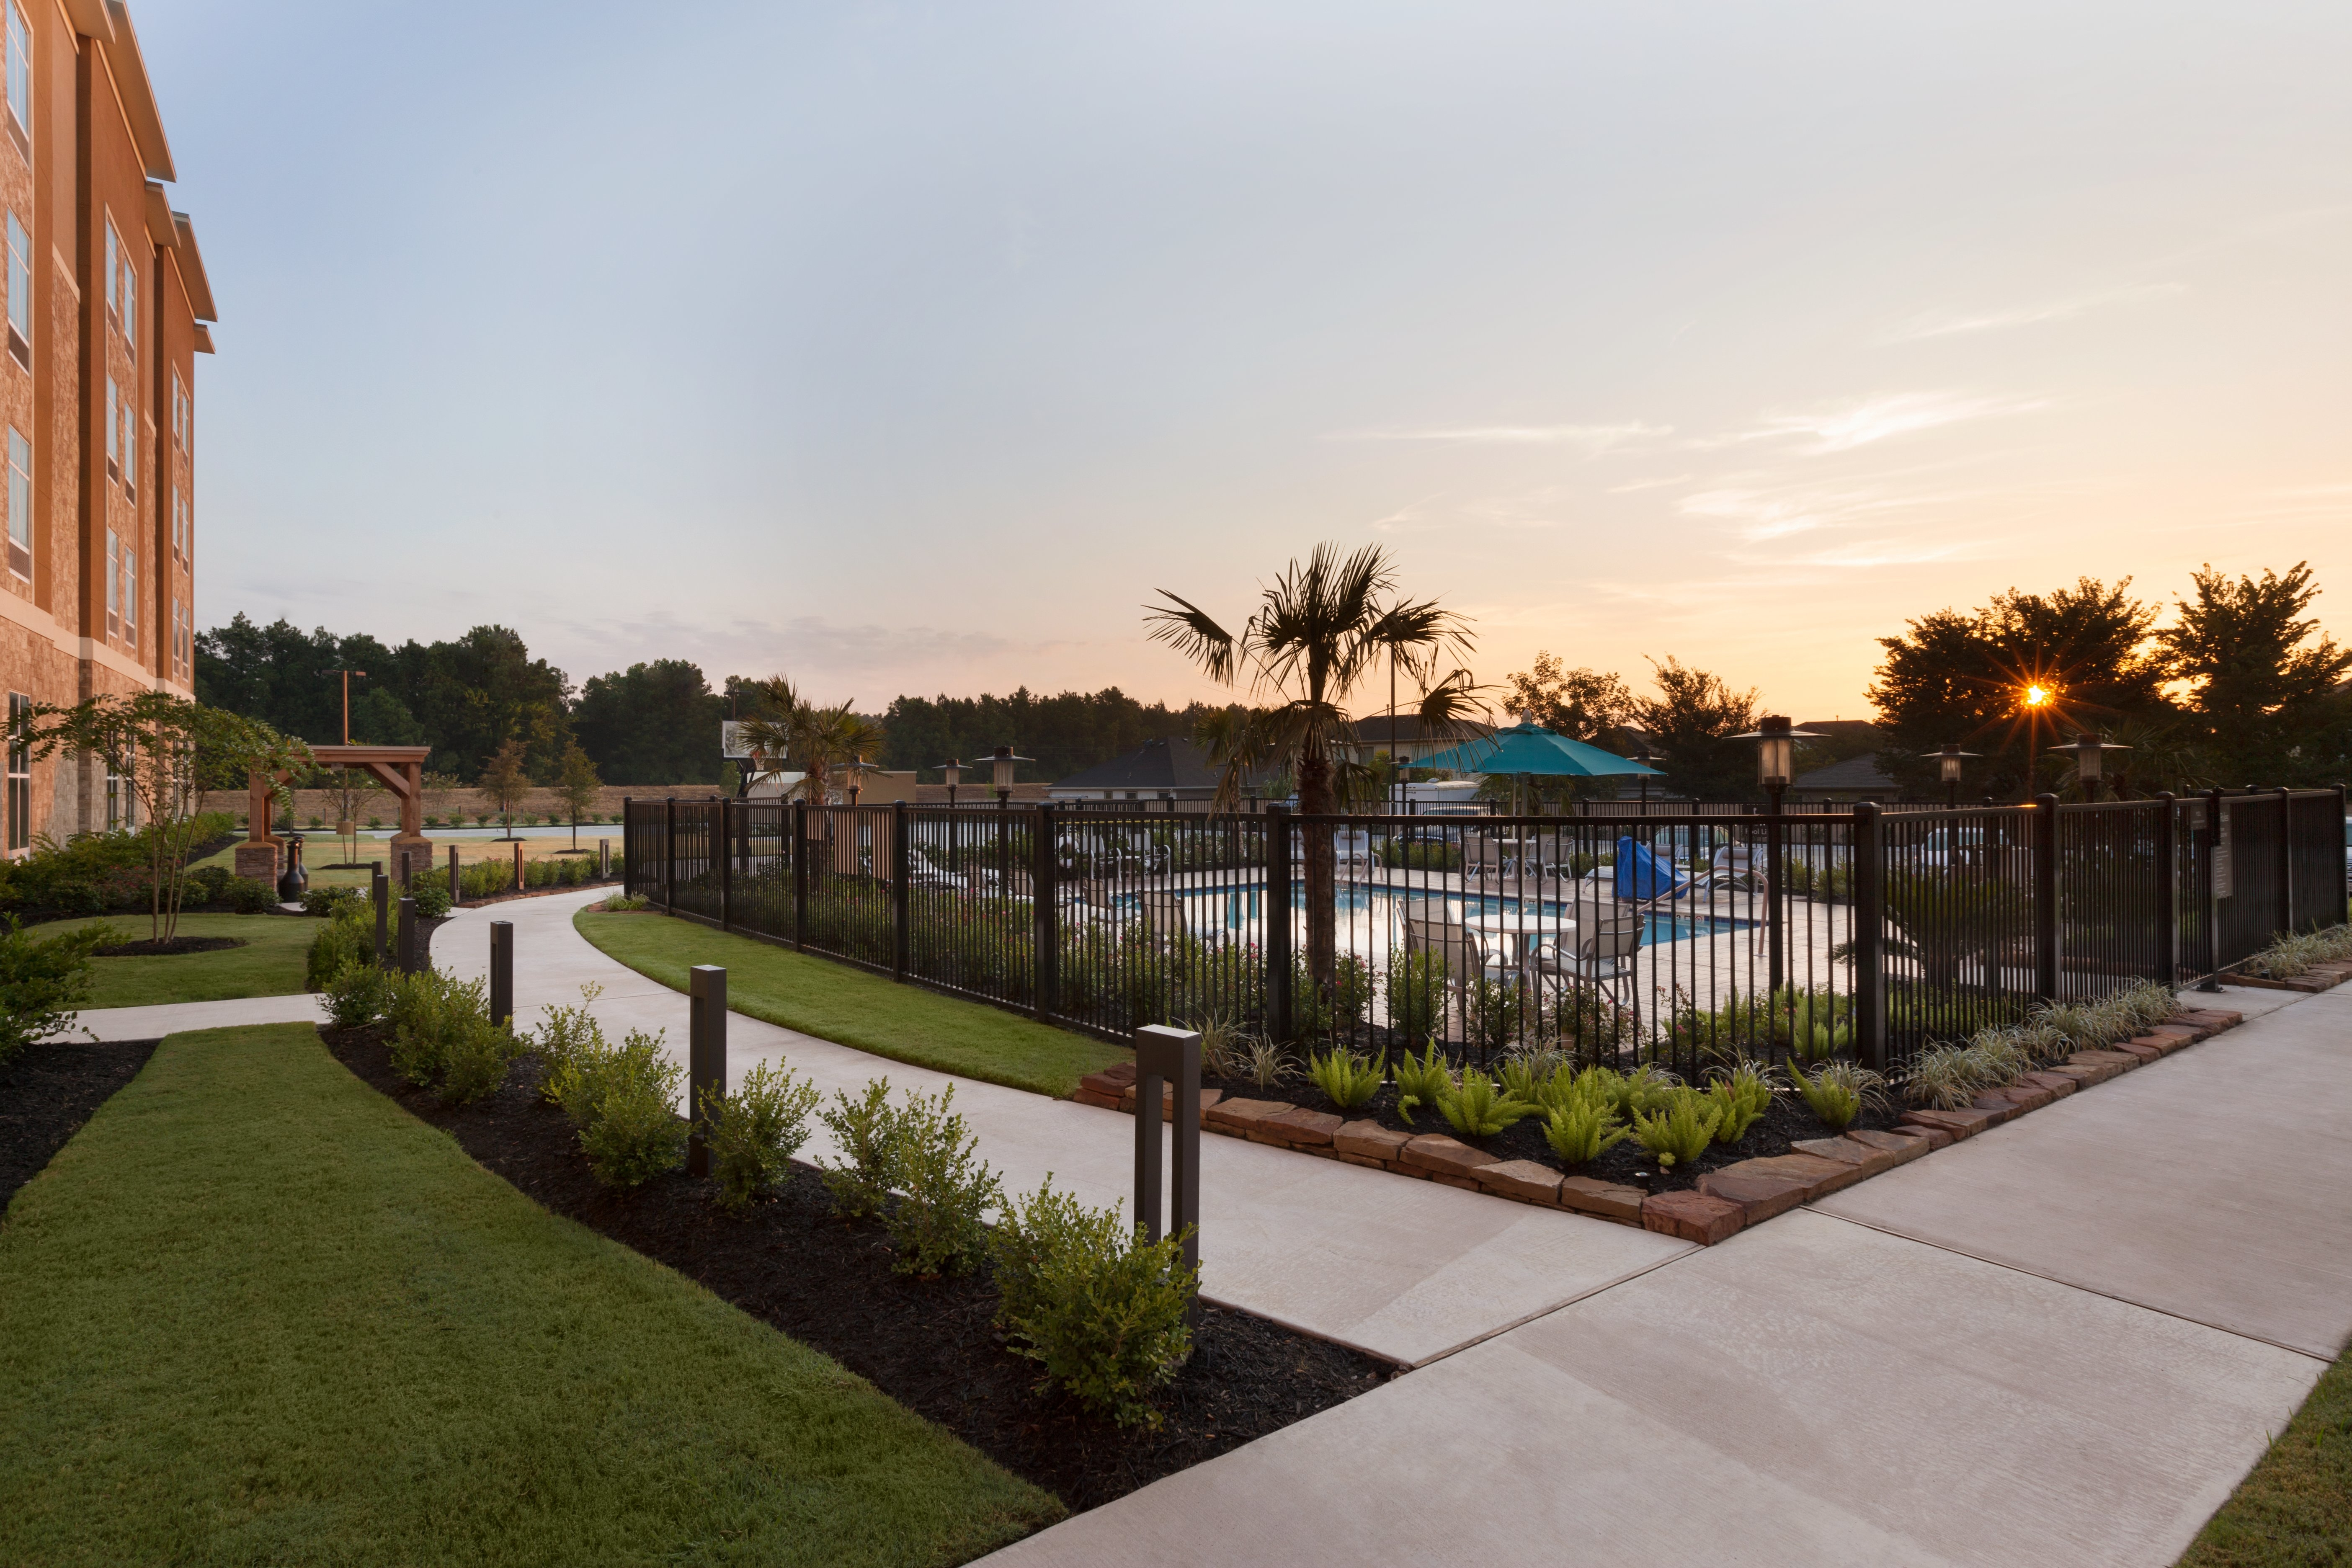 Homewood Suites by Hilton North Houston/Spring image 12